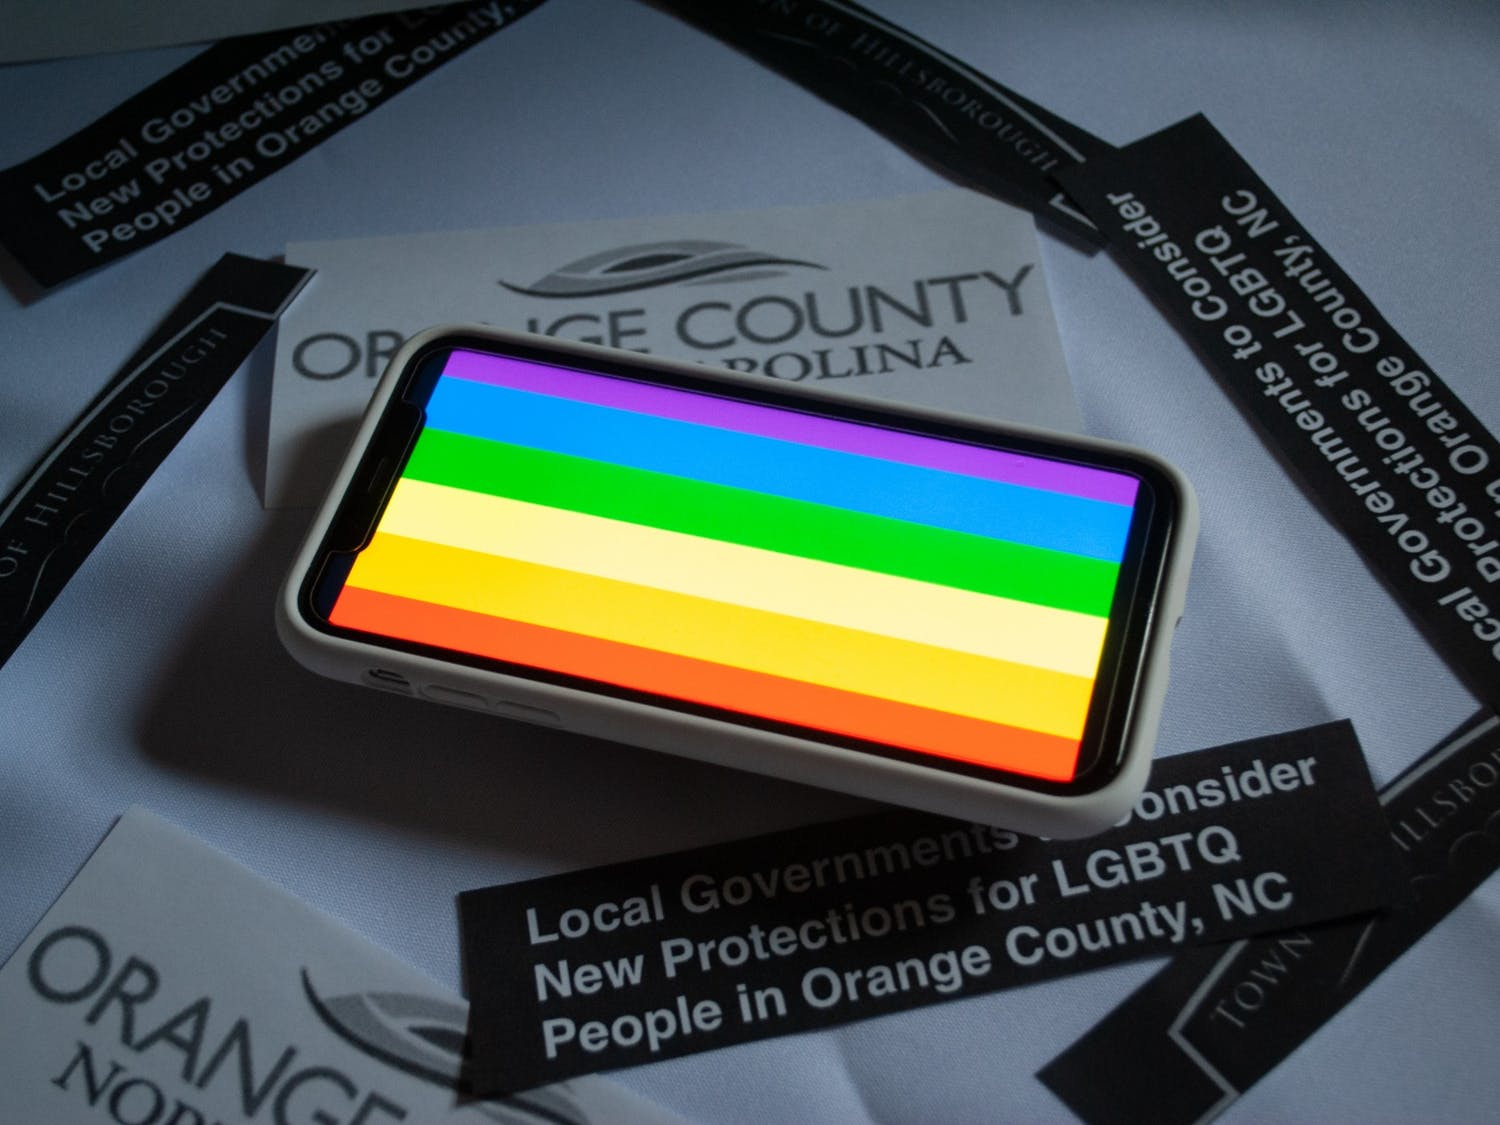 DTH Photo Illustration. Local governments met to discuss protections for LGBTQ+ people in Orange County.